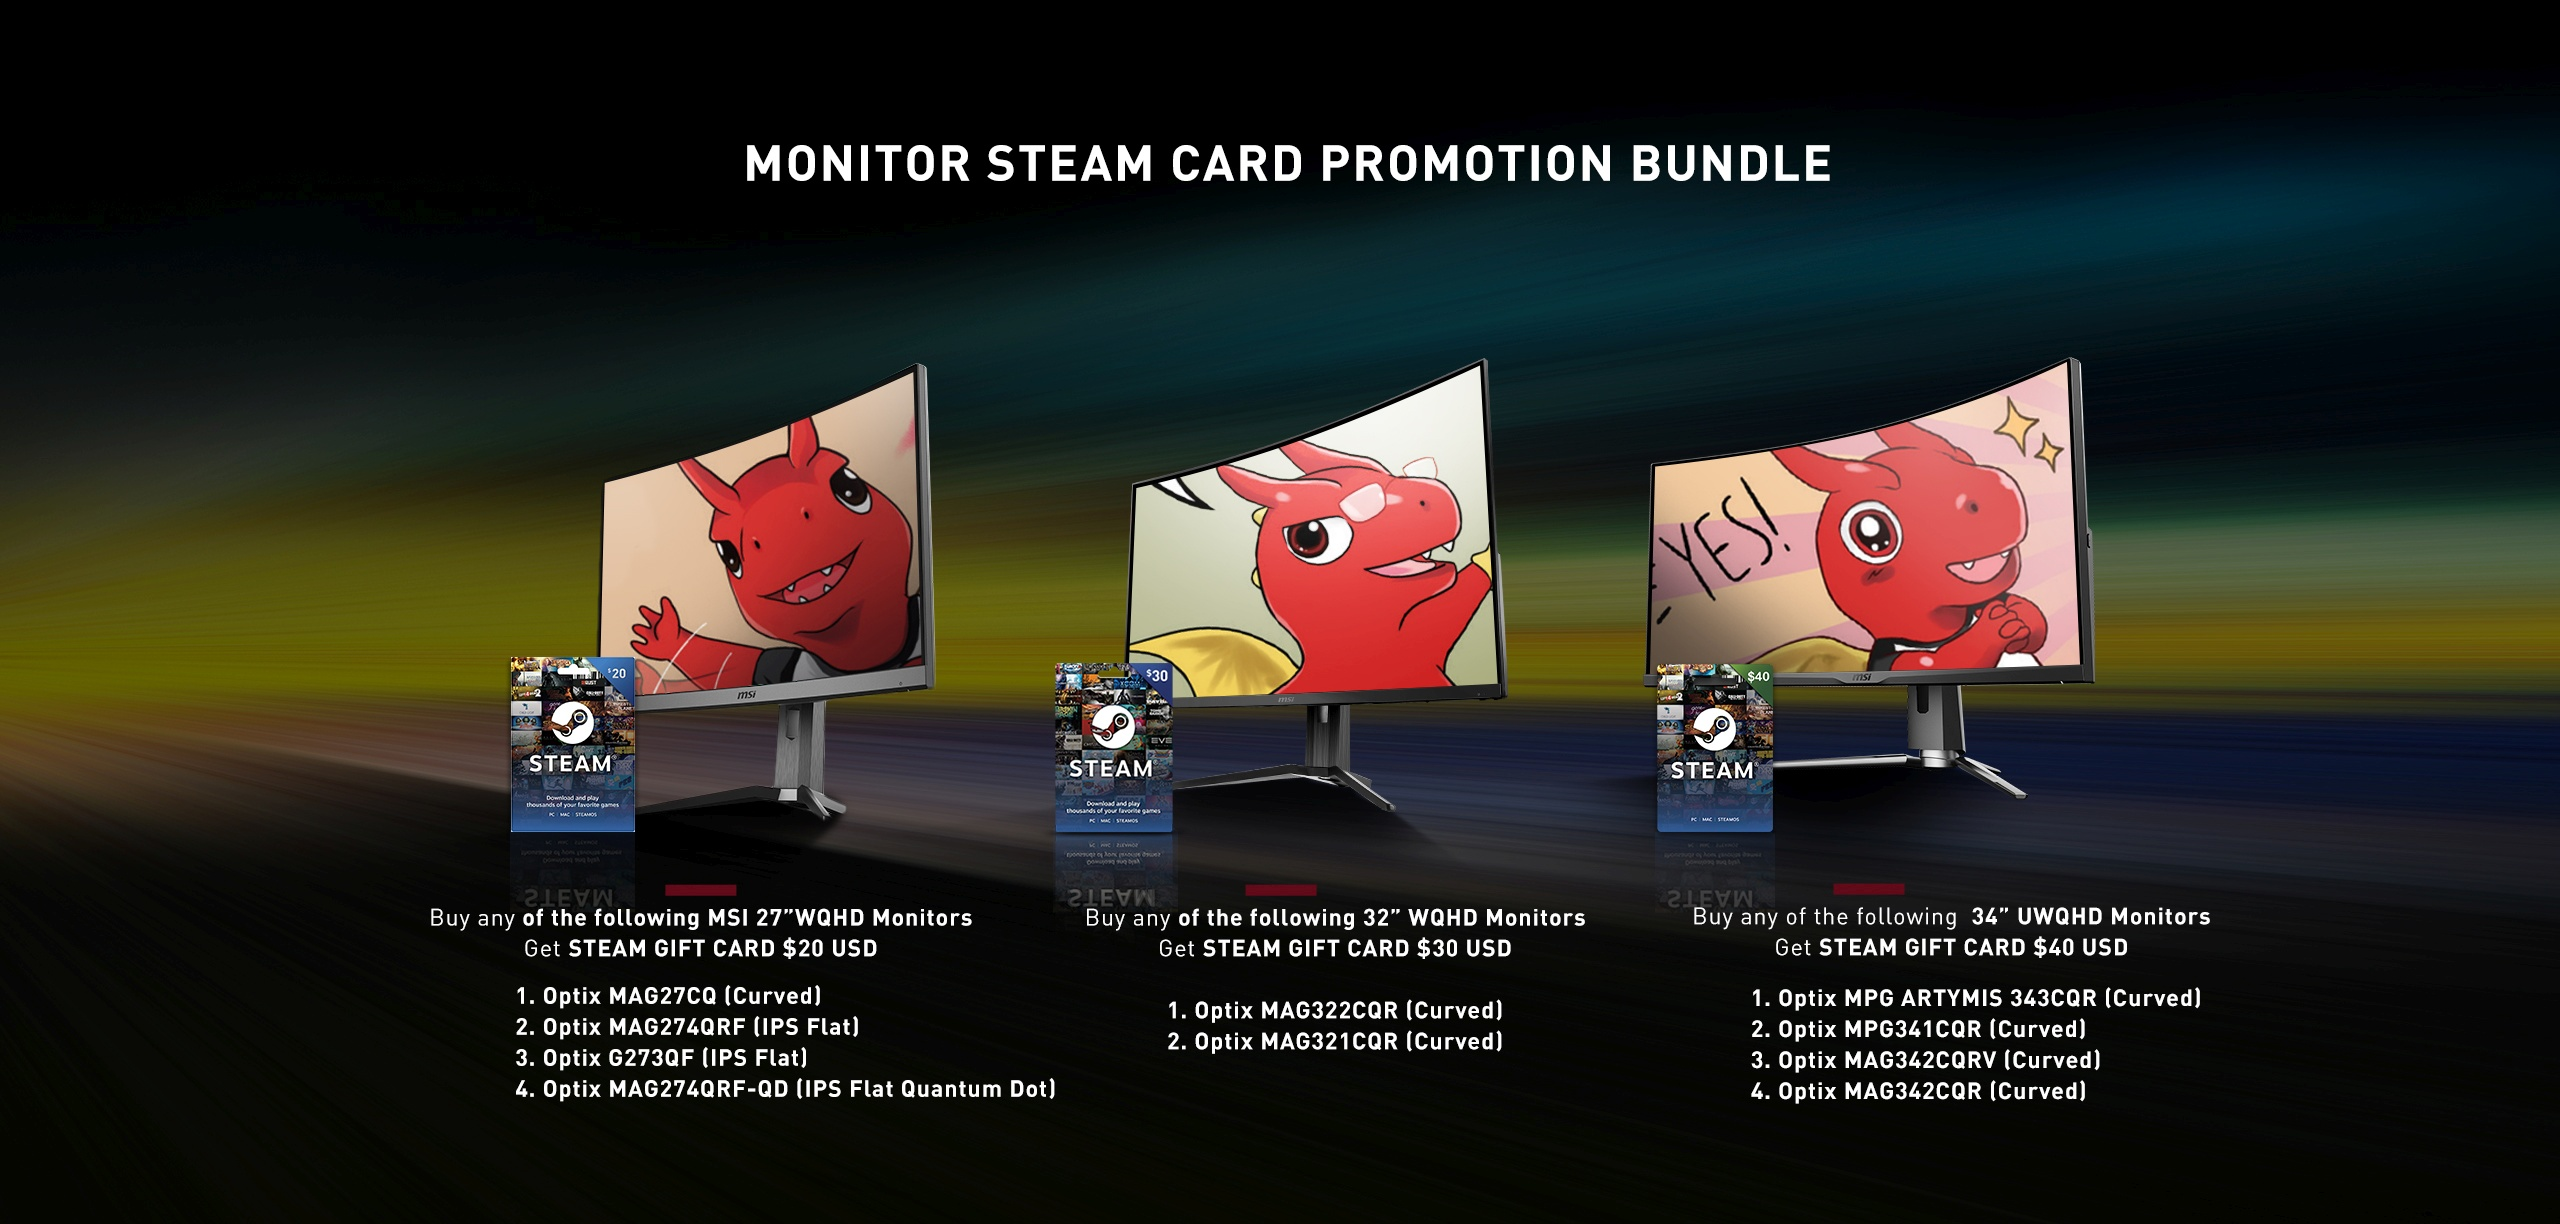 SteamCardPromotion